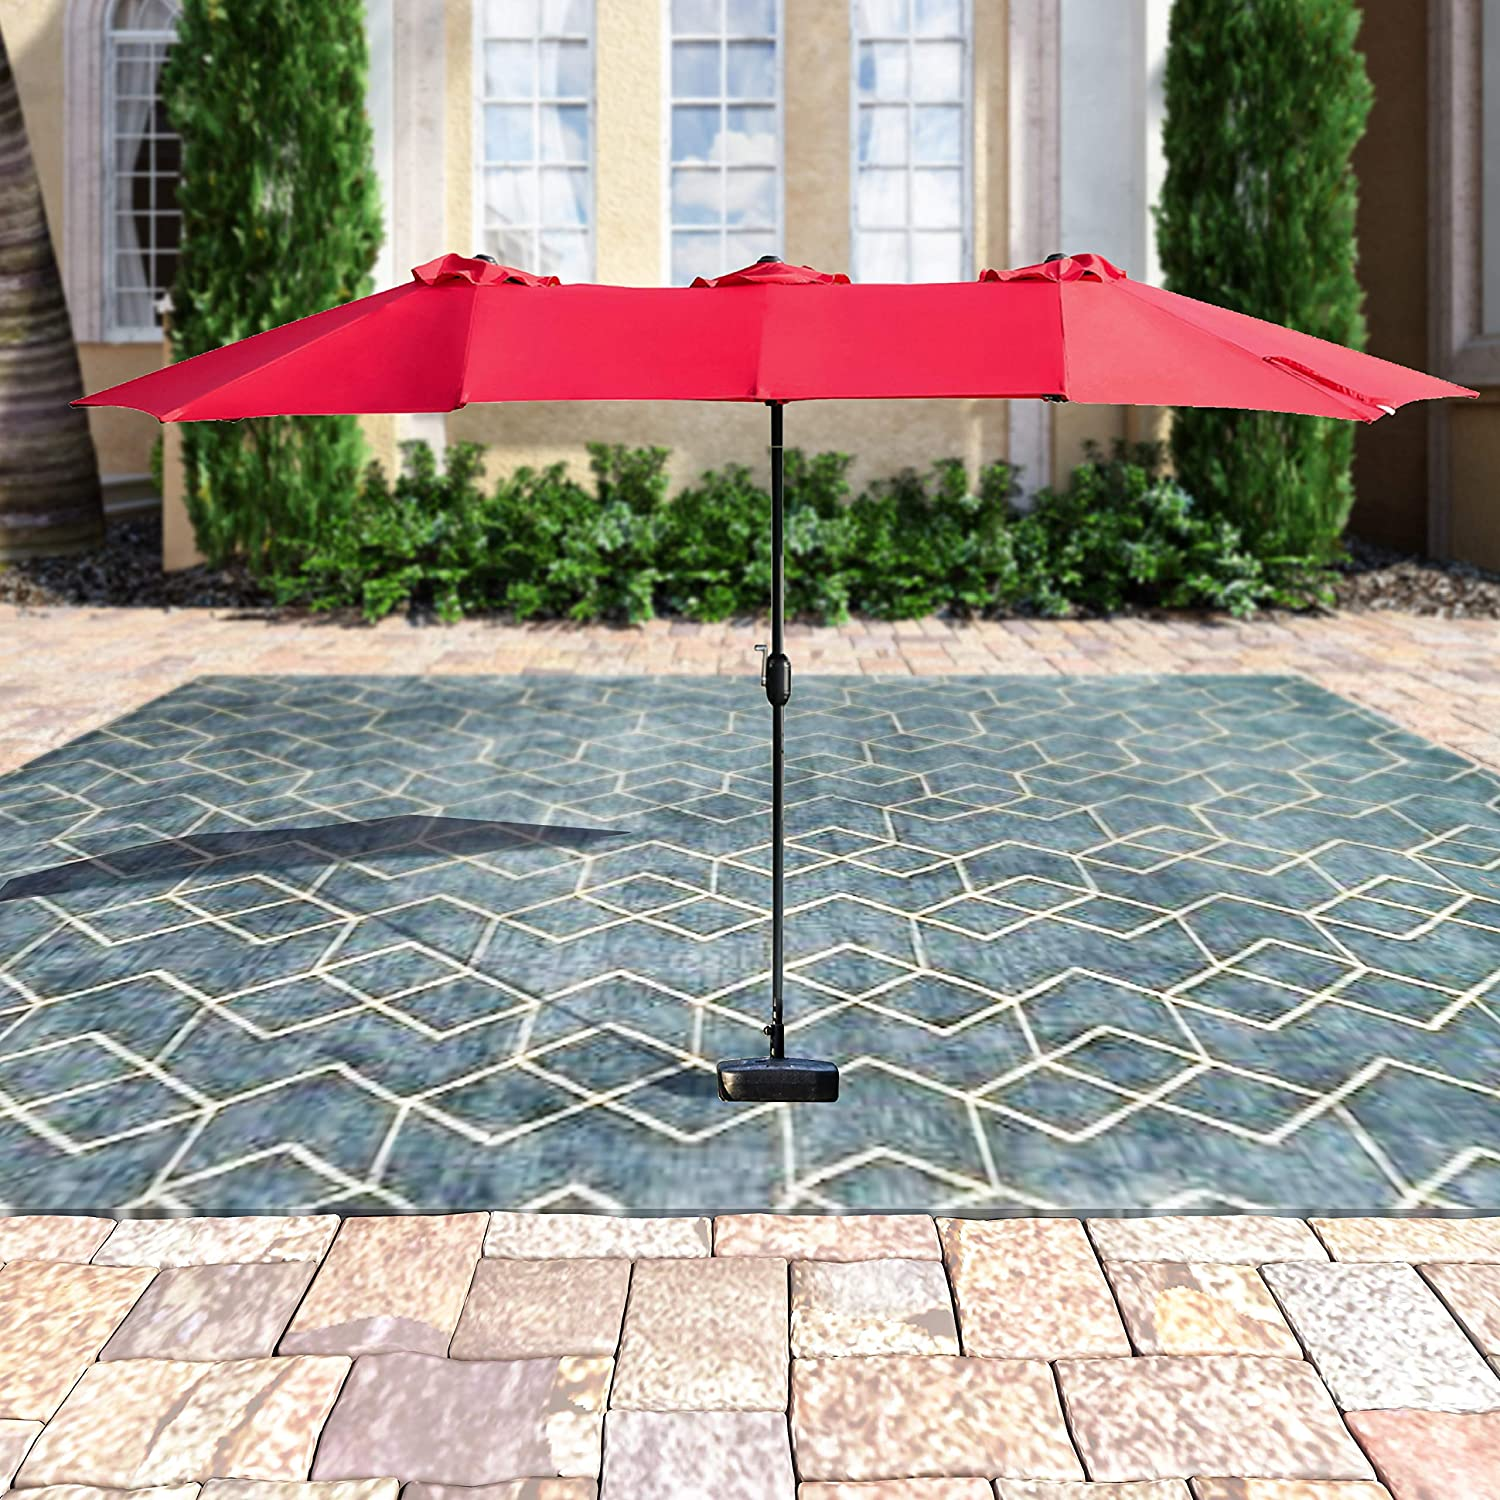 Patio Festival Umbrella Base Water Filled Weight Portable Plastic Outdoor Parasol Stand Heavy Duty Holder for Camping,Garden,Backyard